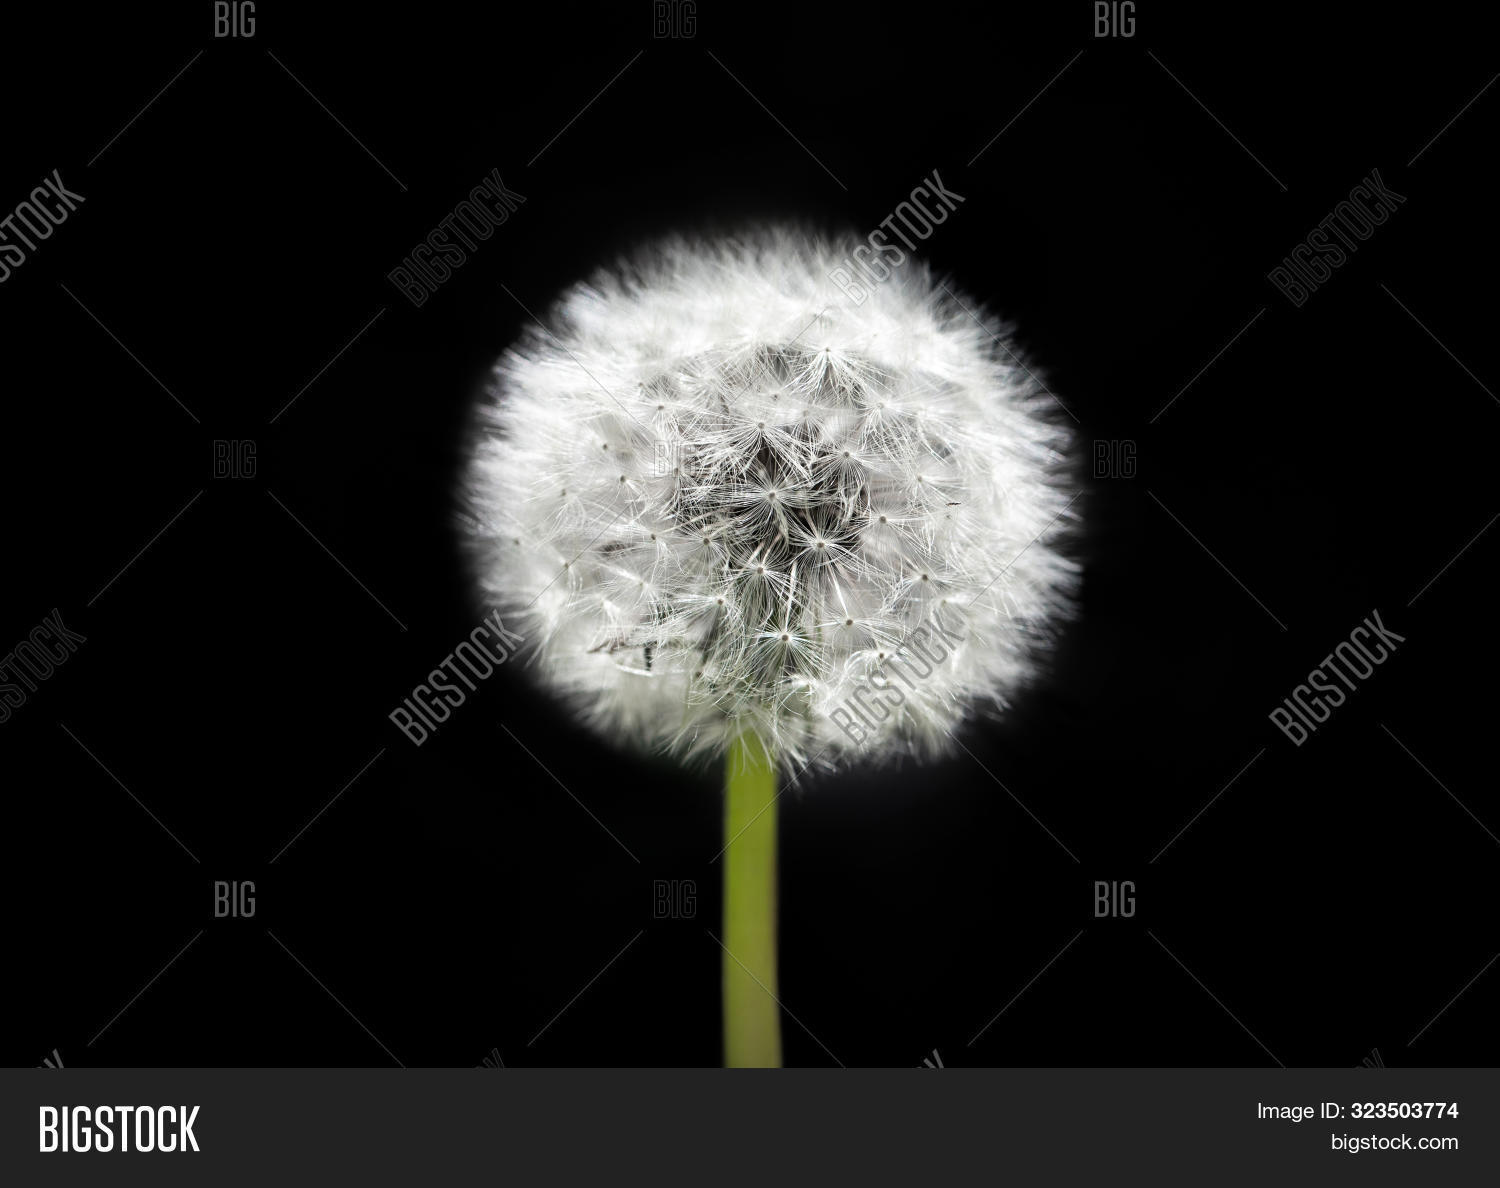 art,background,beautiful,beauty,black,blooming,blossom,blowing,bright,close-up,closeup,color,concept,dandelion,delicate,design,detail,dry,field,flora,flower,fluffy,fragility,garden,green,head,horizontal,isolated,light,macro,nature,outdoors,parachute,plant,relaxation,season,seed,soft,softness,spring,stem,summer,symbolic,taraxacum,wallpaper,weed,white,wish